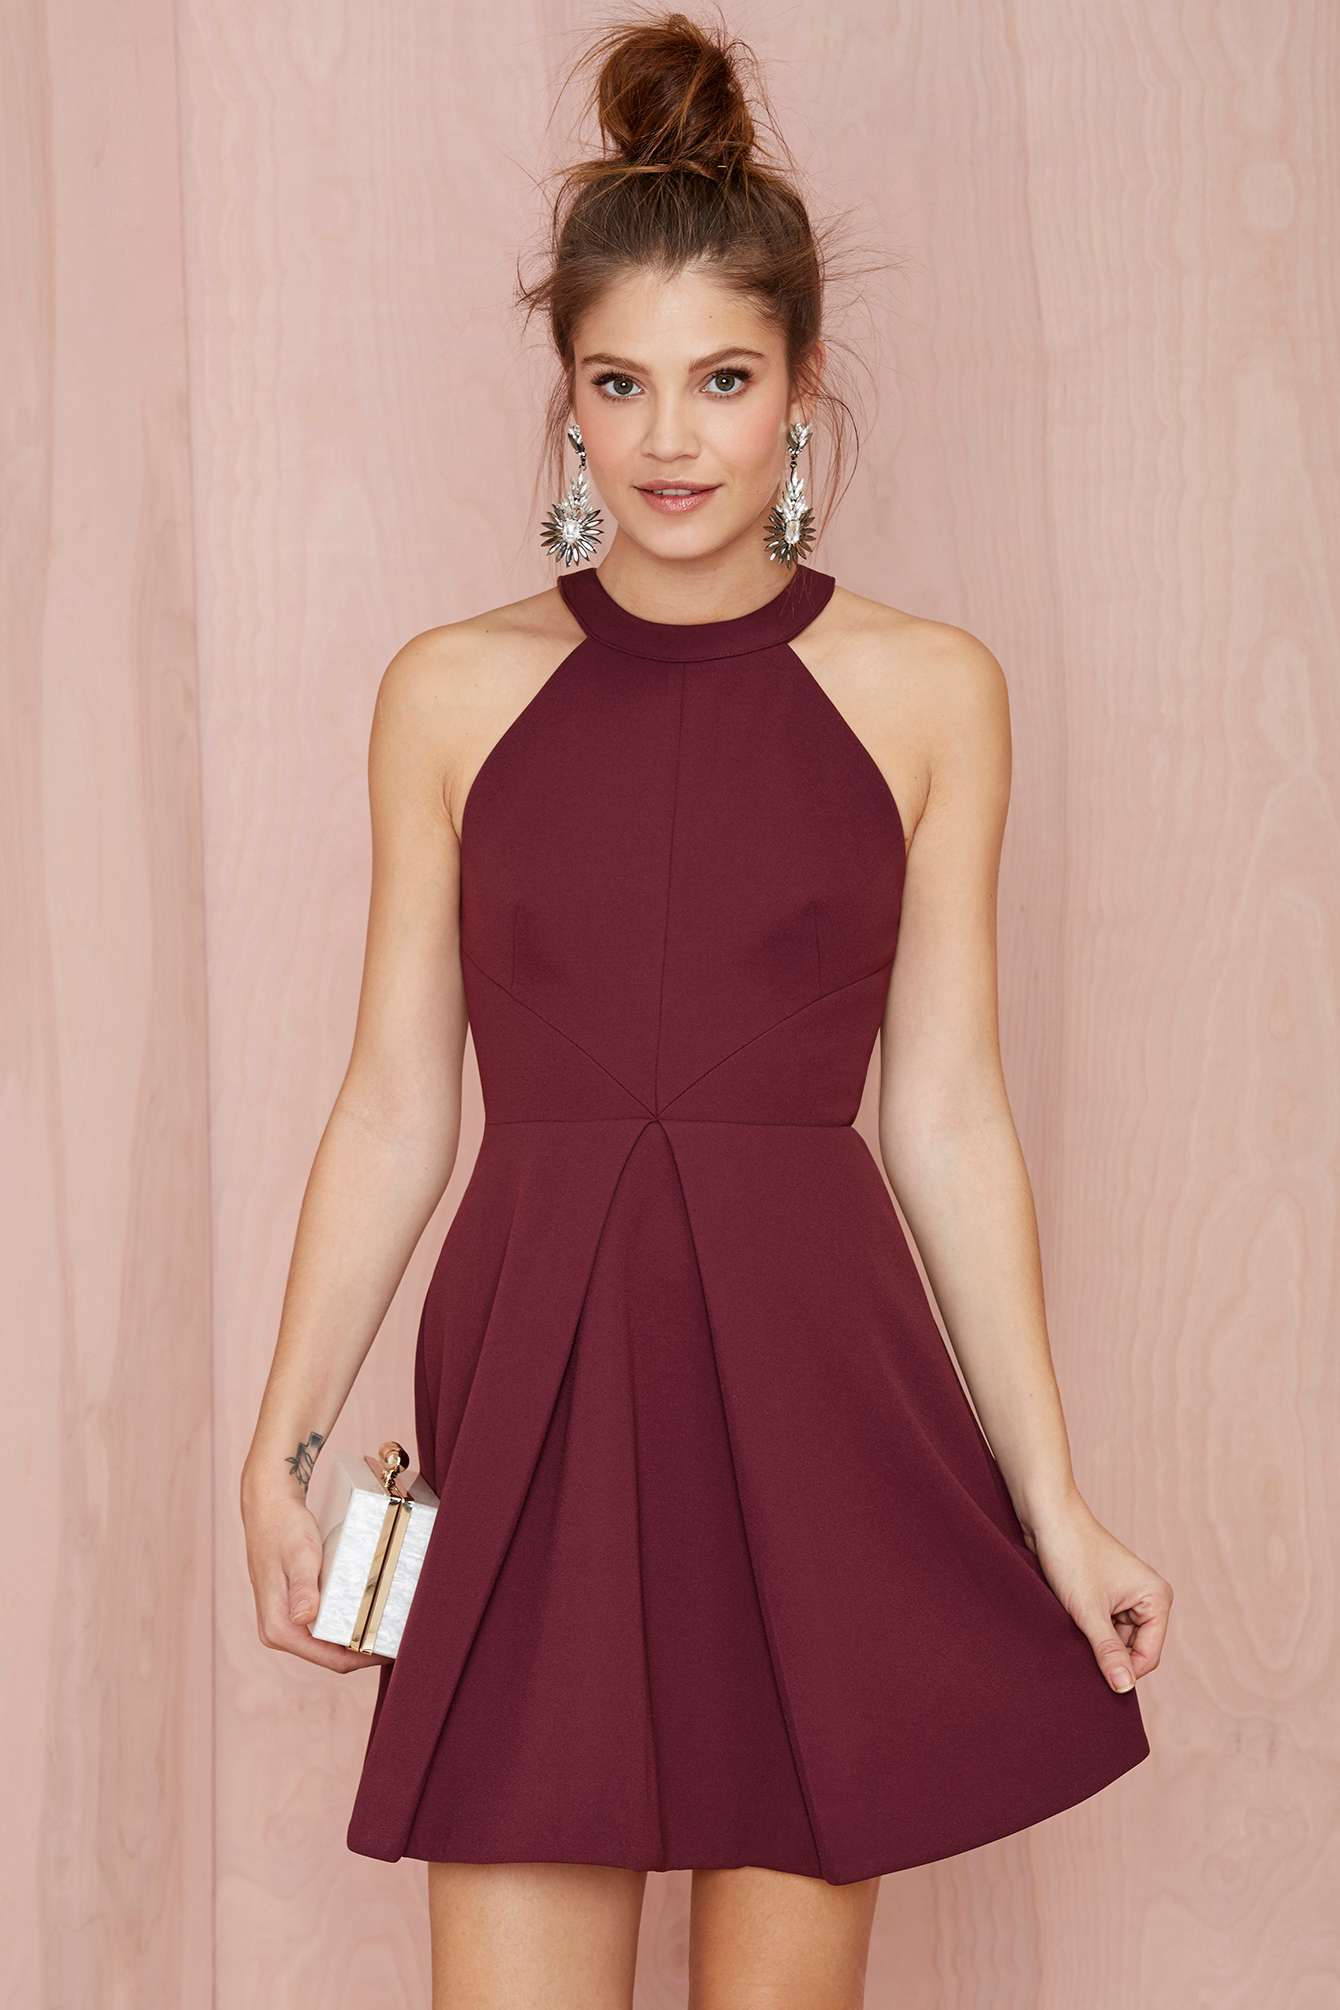 Formal Cocktail Dress for Night Wedding.jpg